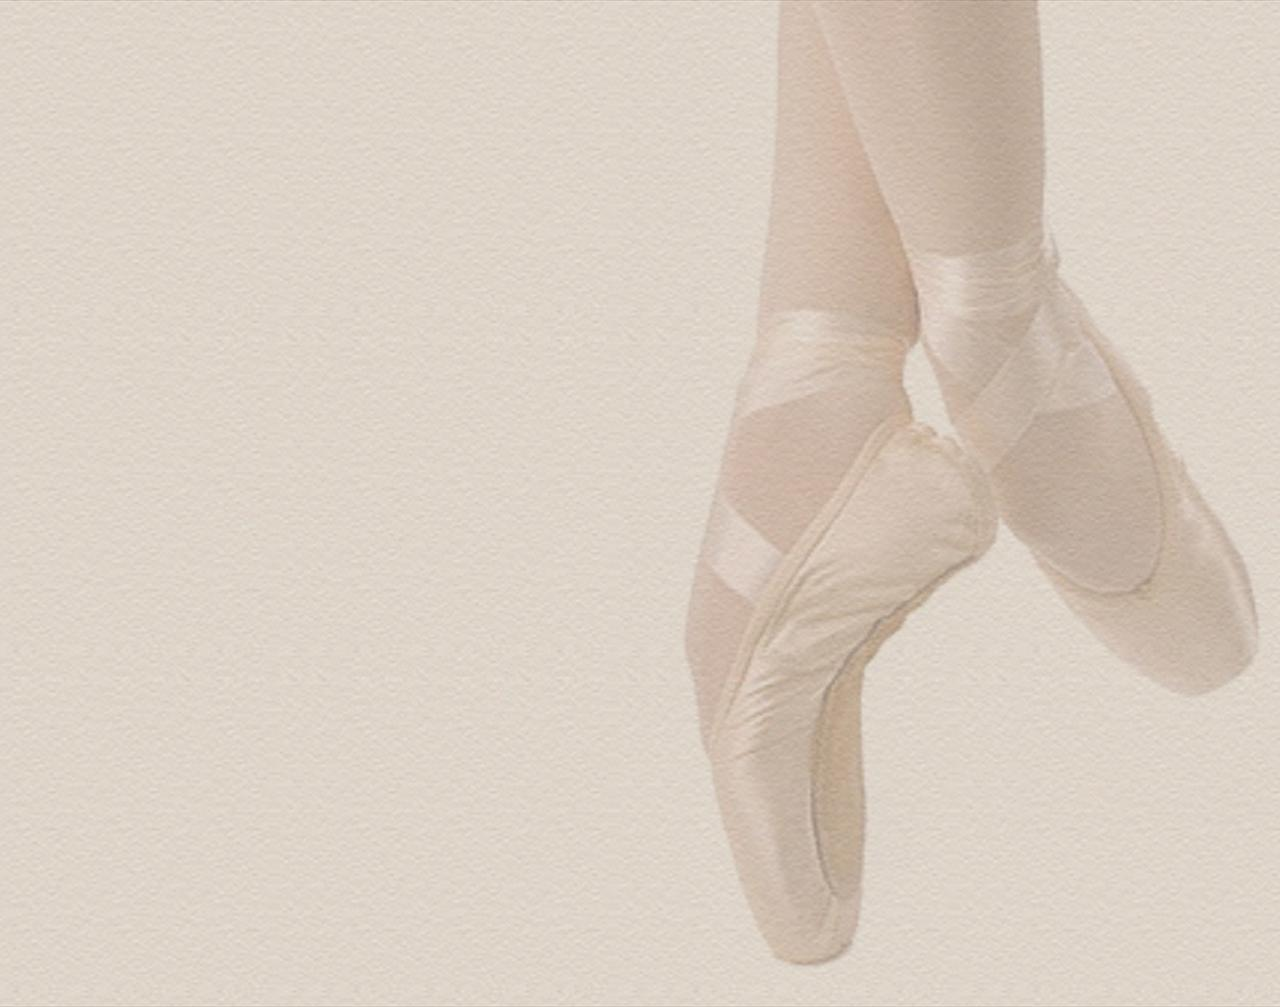 Photobug Photo Booth Rental » Blog Archive » ballet shoes